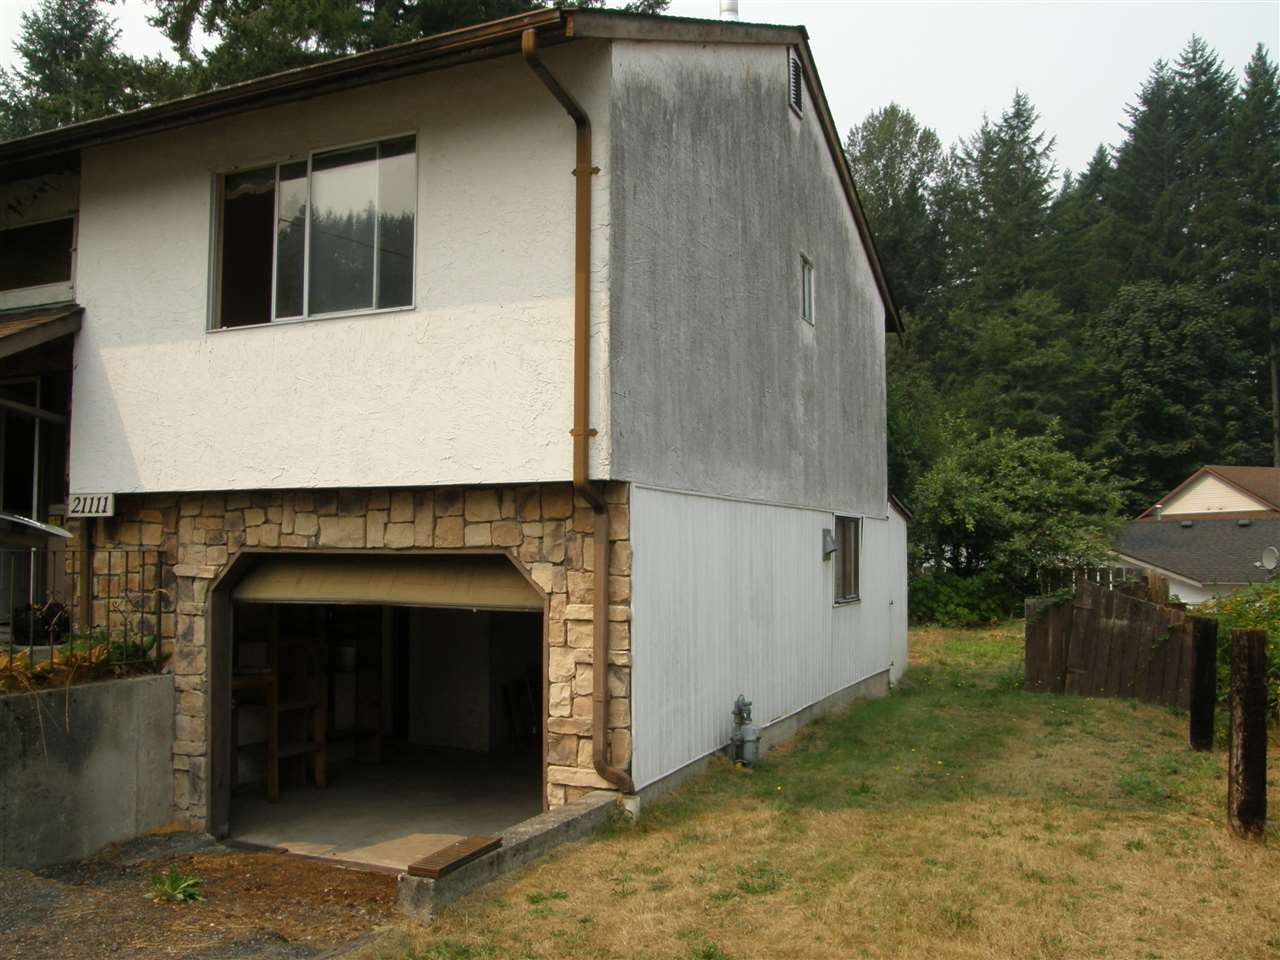 Detached at 21111 LAKEVIEW CRESCENT, Hope, British Columbia. Image 12